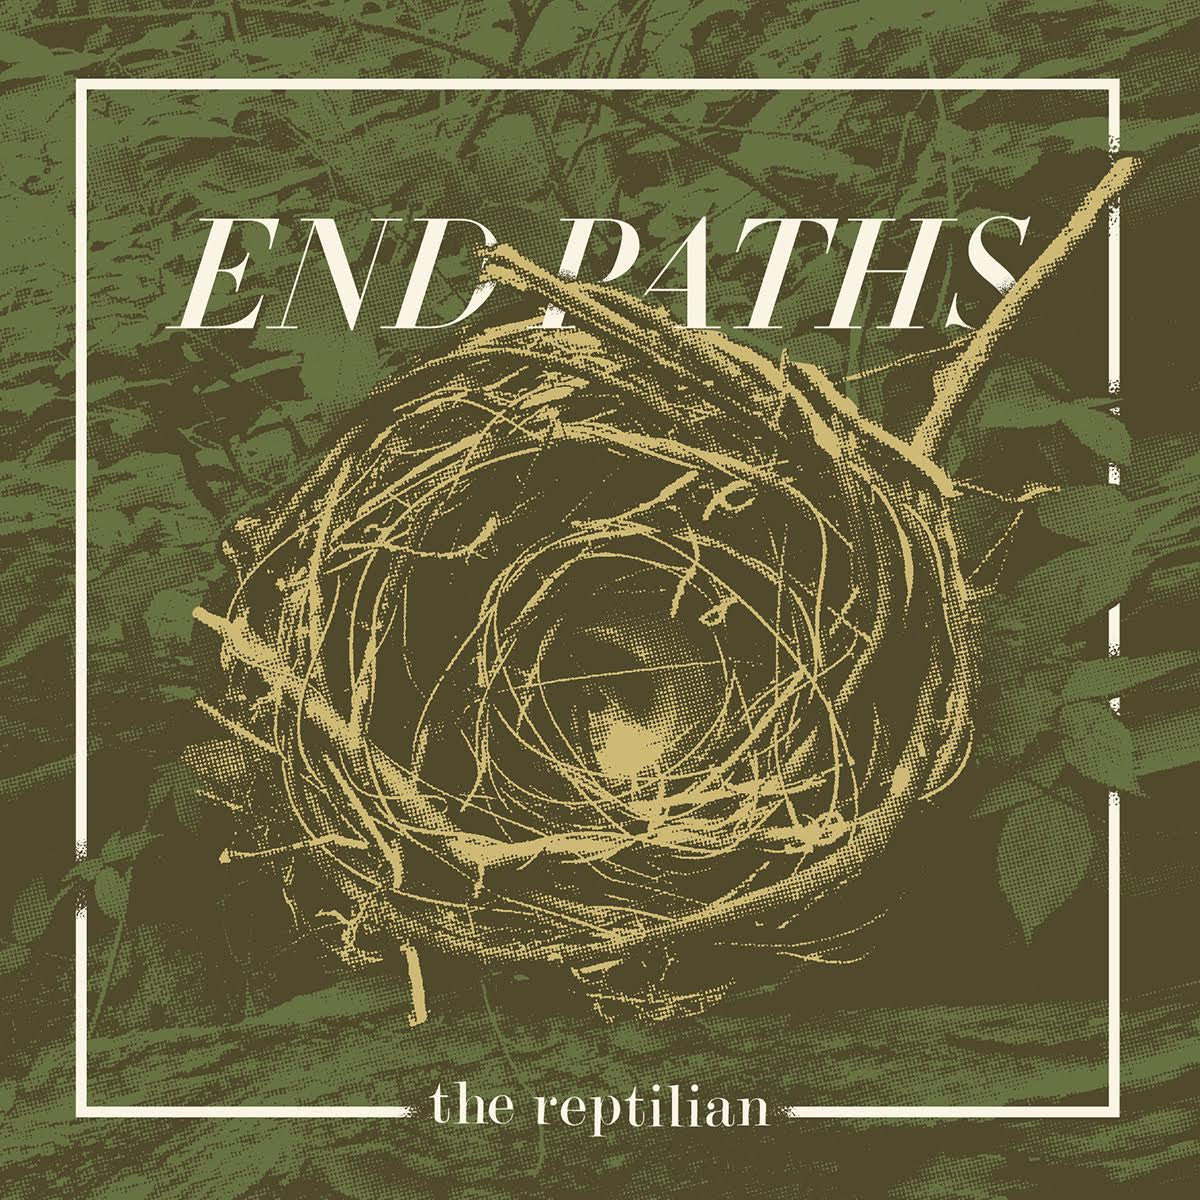 The Reptilian - End Paths Art Print